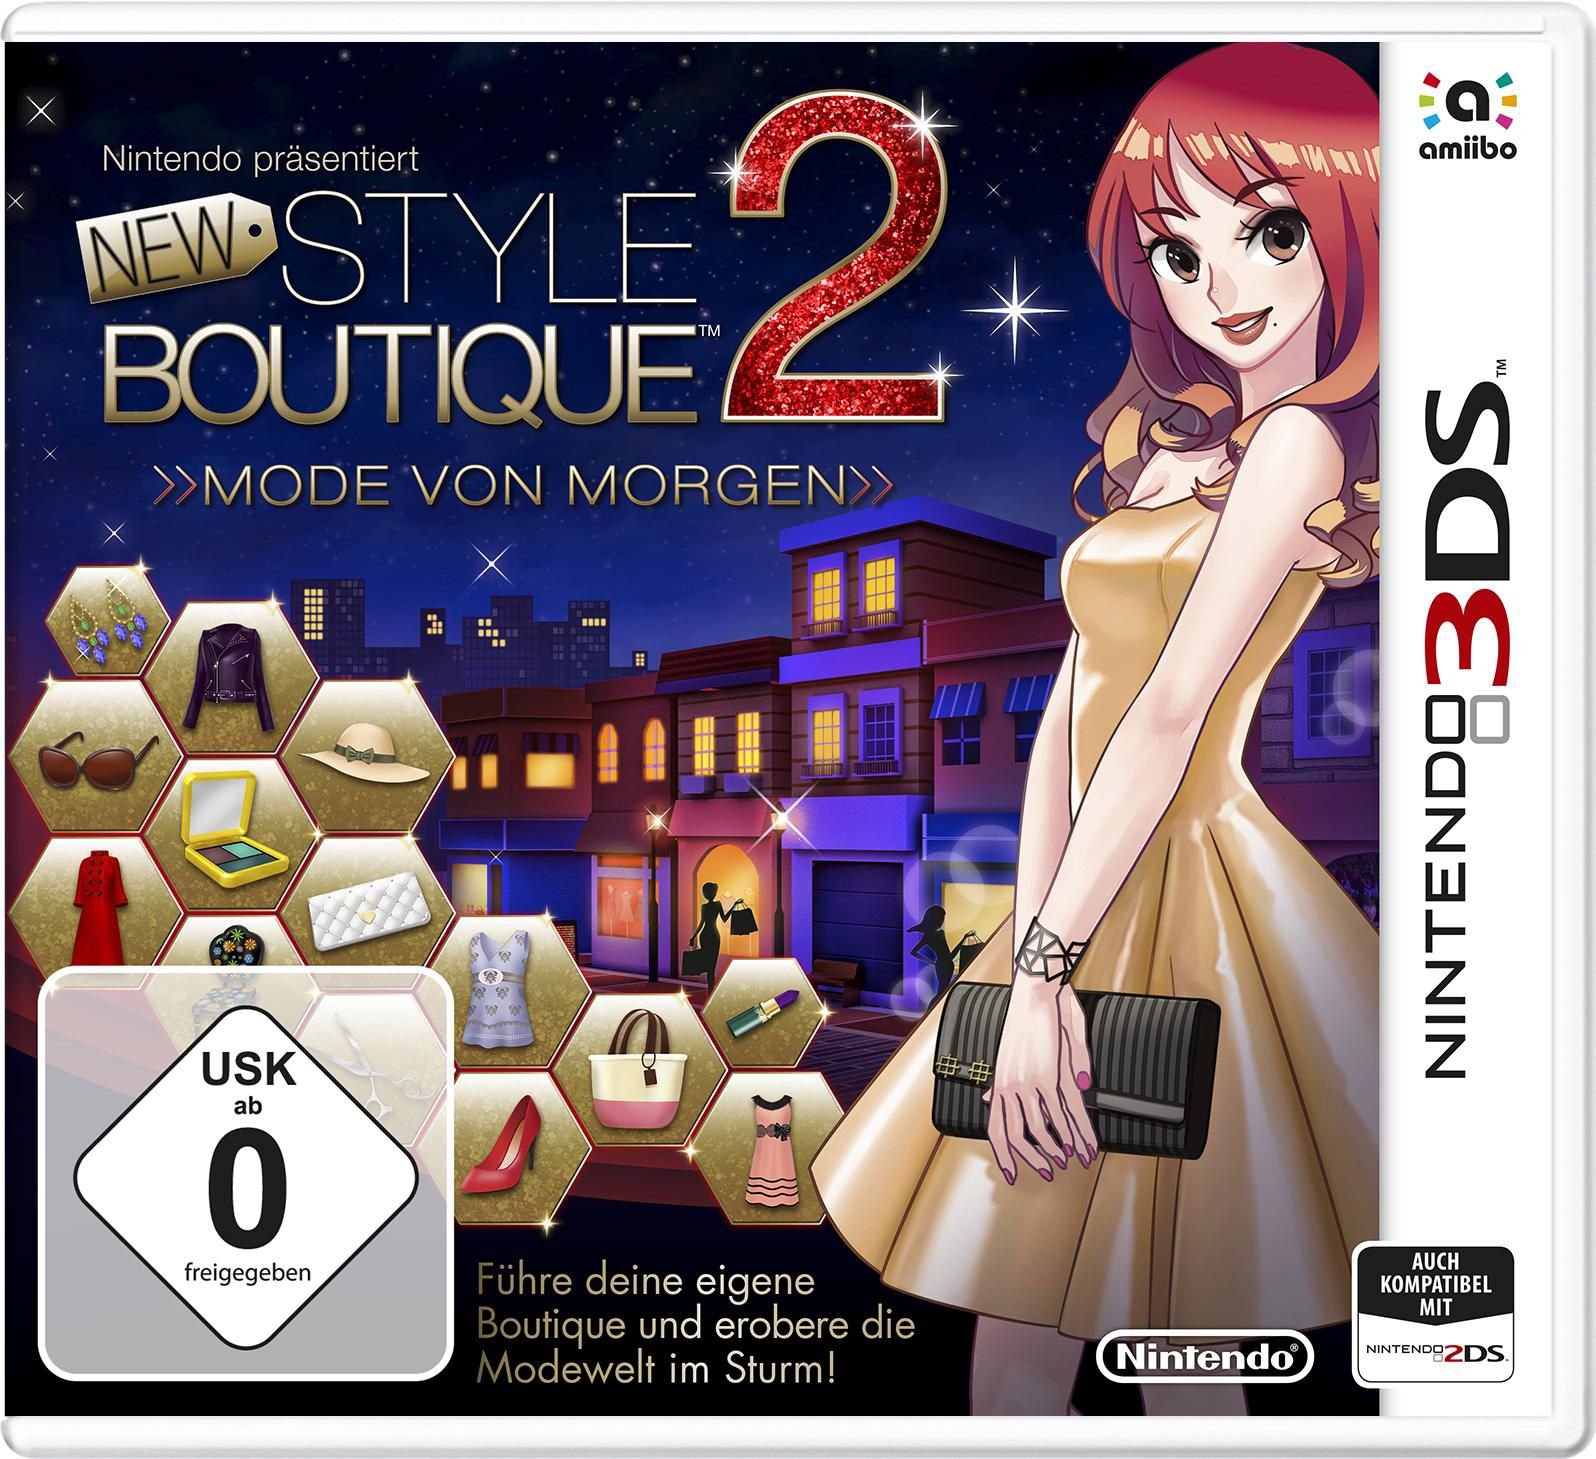 NINTENDO 3DS New Style Boutique 2 - Fashion Forword, Nintendo 3DS-Spiel